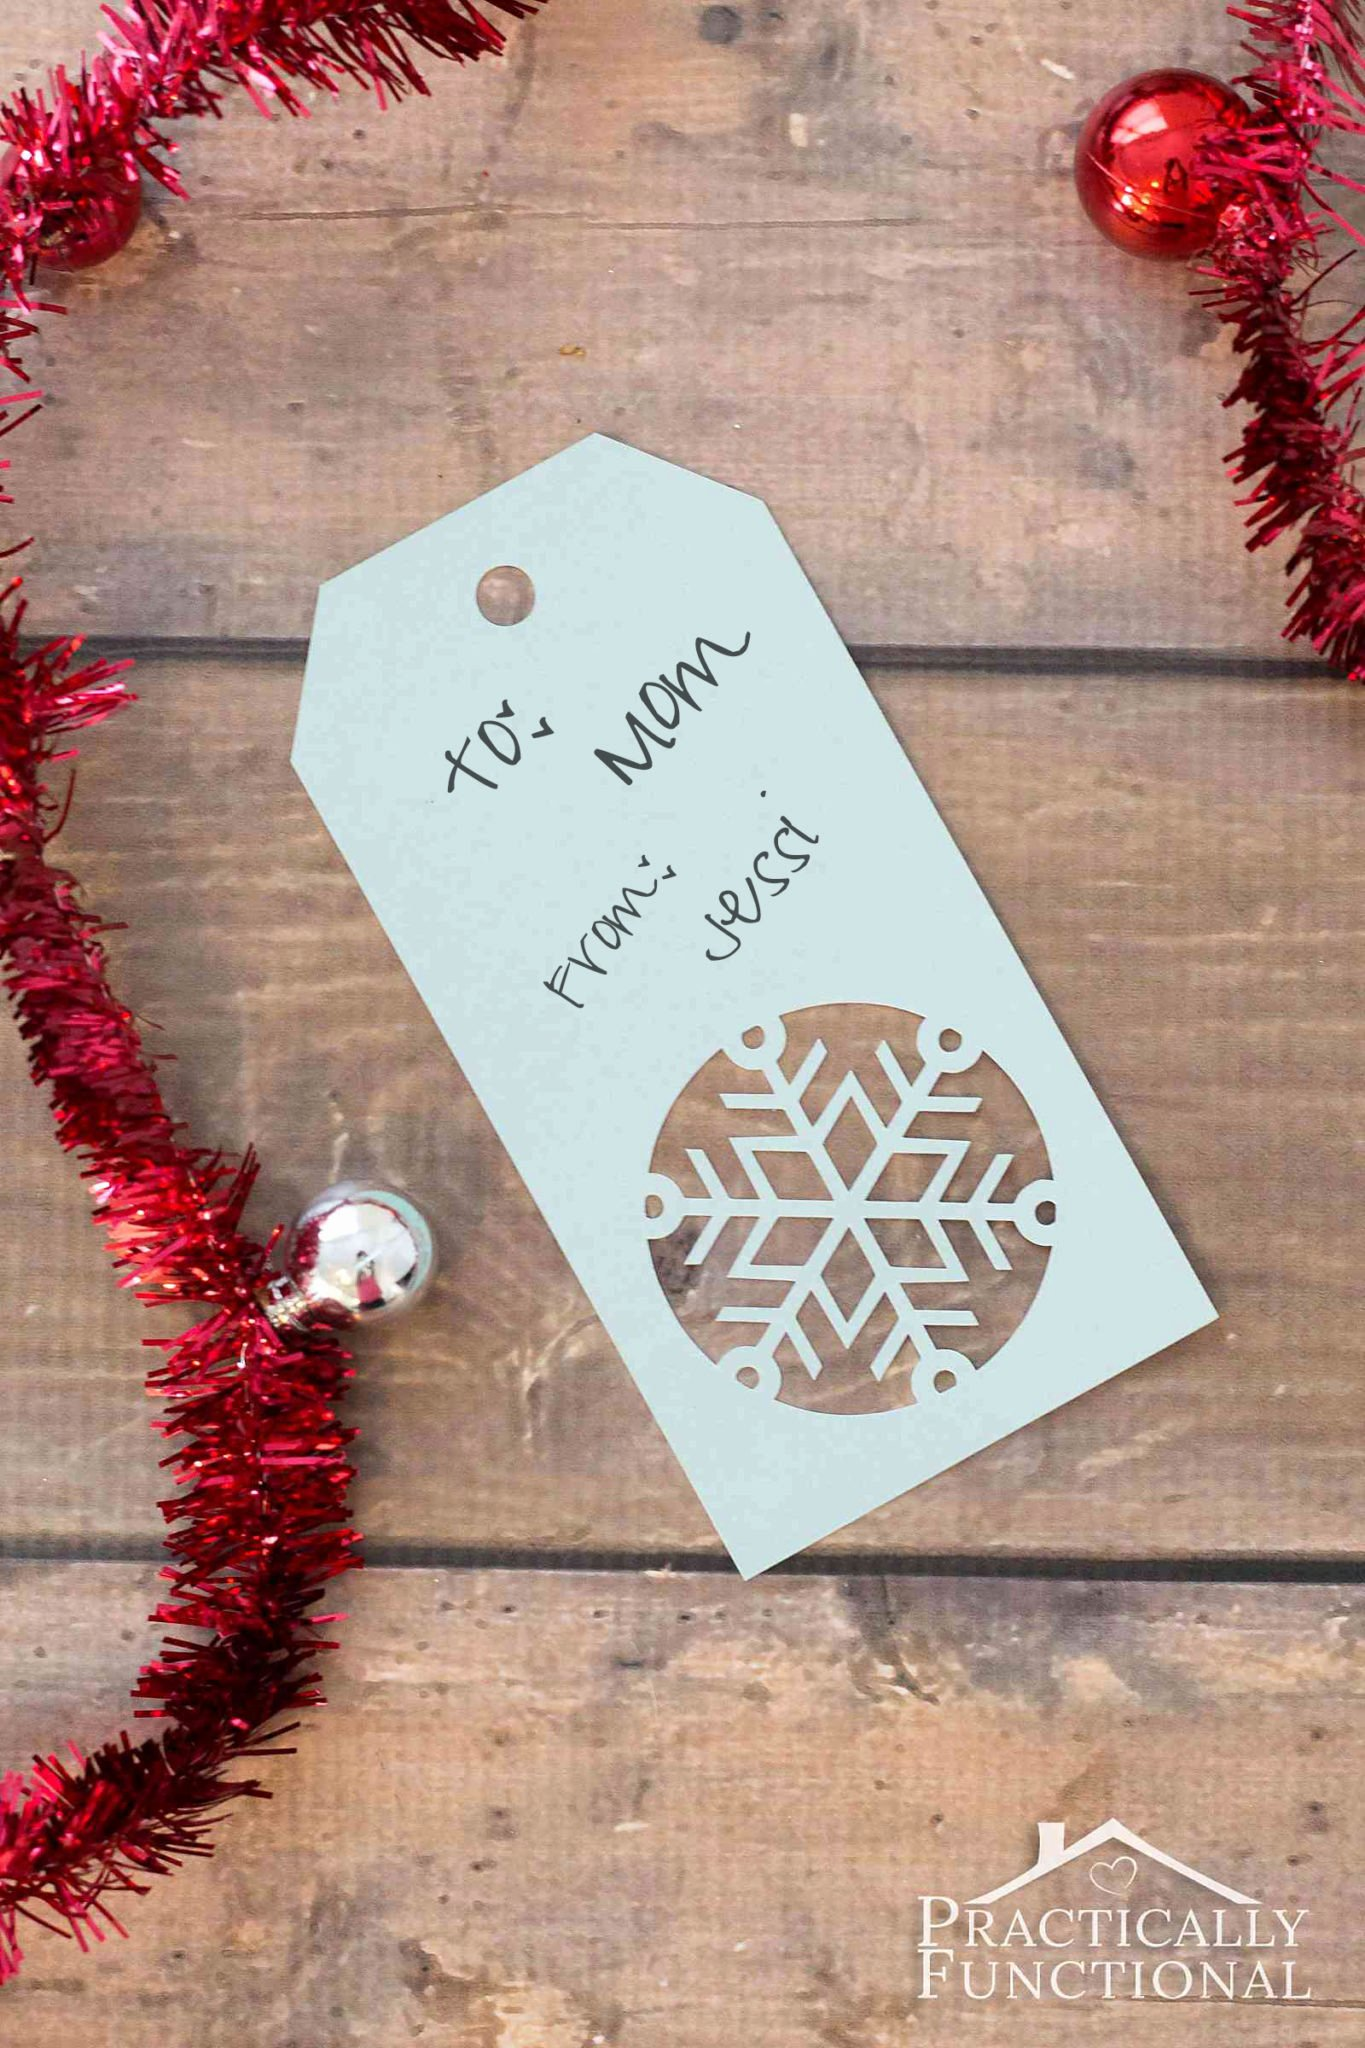 Template for Gift Tags Unique Handmade Snowflake Christmas Gift Tags Free Template